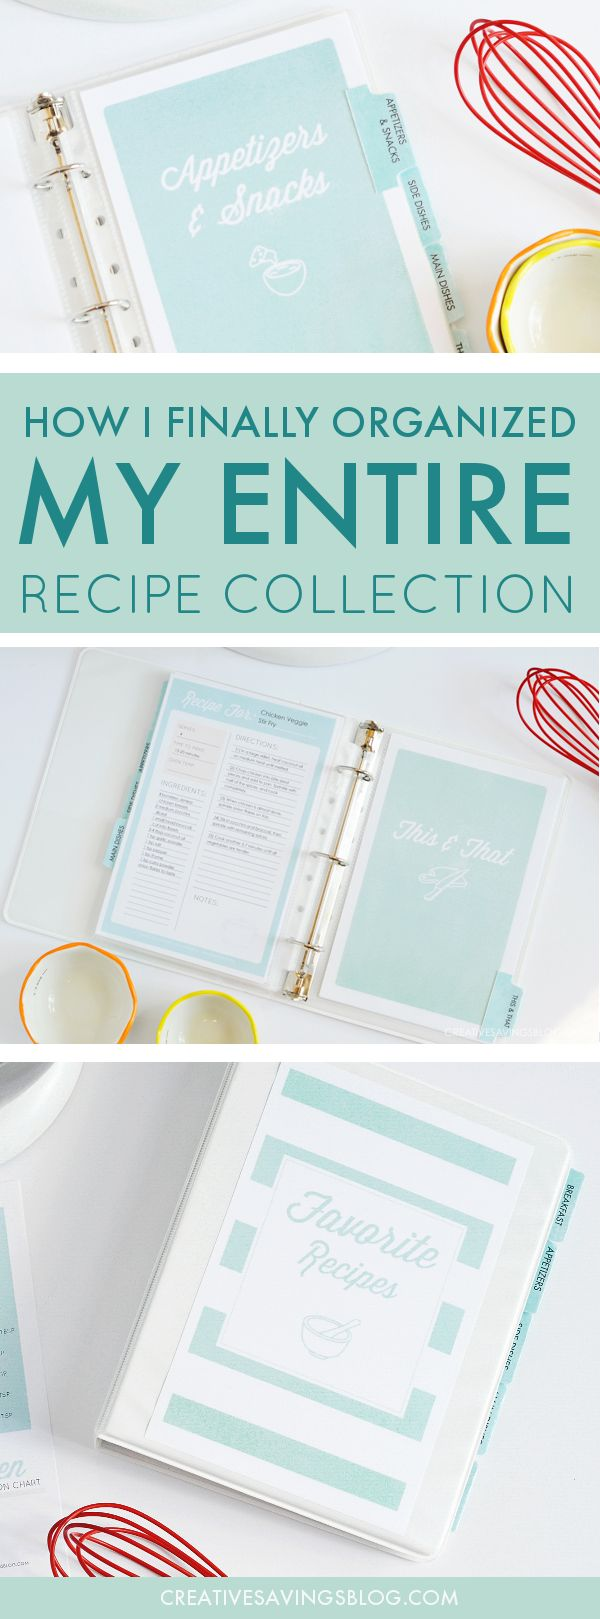 I am in LOVE with this recipe binder to organize my recipes! It literally saved my sanity, and to think—I put this project off so long because I was too overwhelmed! I'm not joking when I say I had dozens of cookbooks and loose papers sticking out everywhere. Ha! This binder is exactly what I needed, plus, it comes as a printable kit, so all you have to do is assemble with the step-by-step guide. OH, and did I mention how pretty it is??? Swoon!